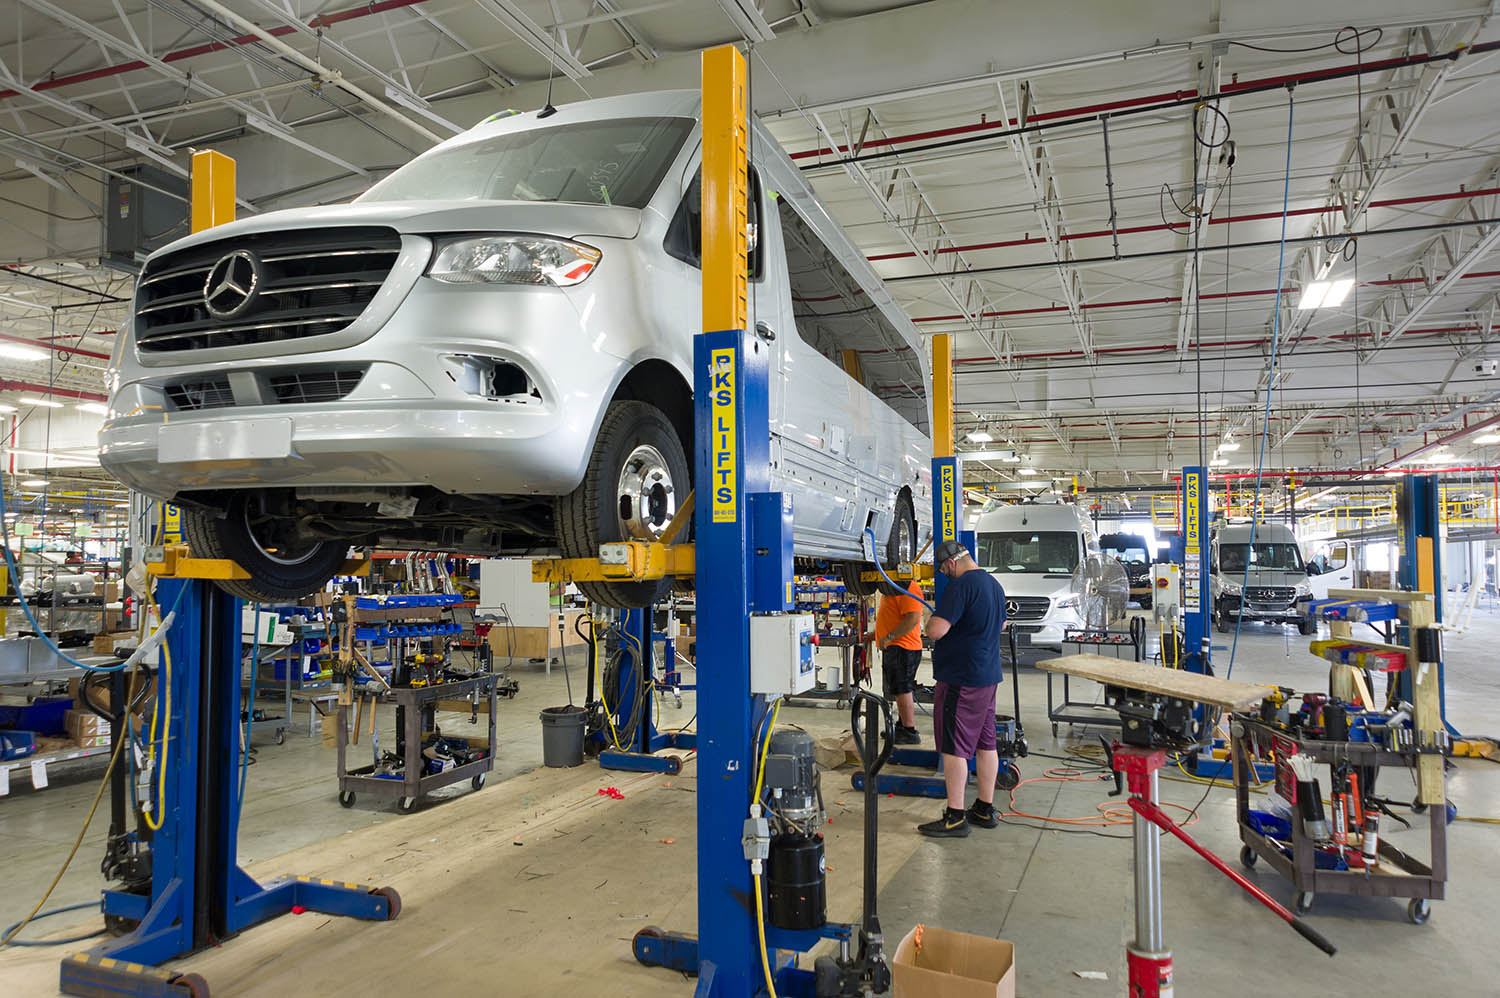 Airstream Touring Coach Production